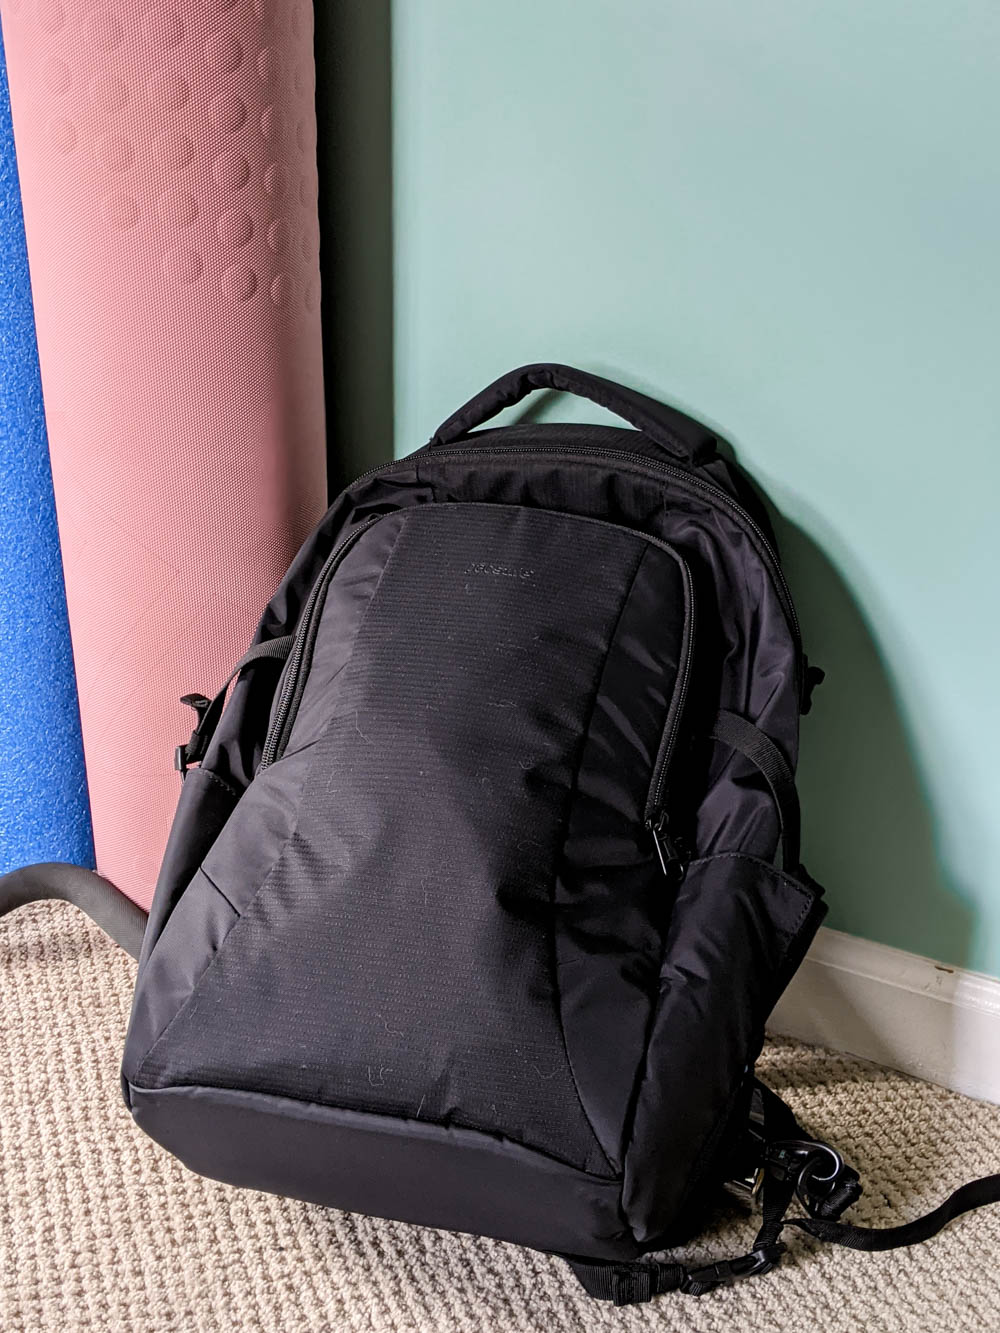 Pacsafe theft-proof backpack | Must-Have Travel Safety Items: 17 Essentials for Your Travel Safety Kit | Travel health and safety | solo female travel safety